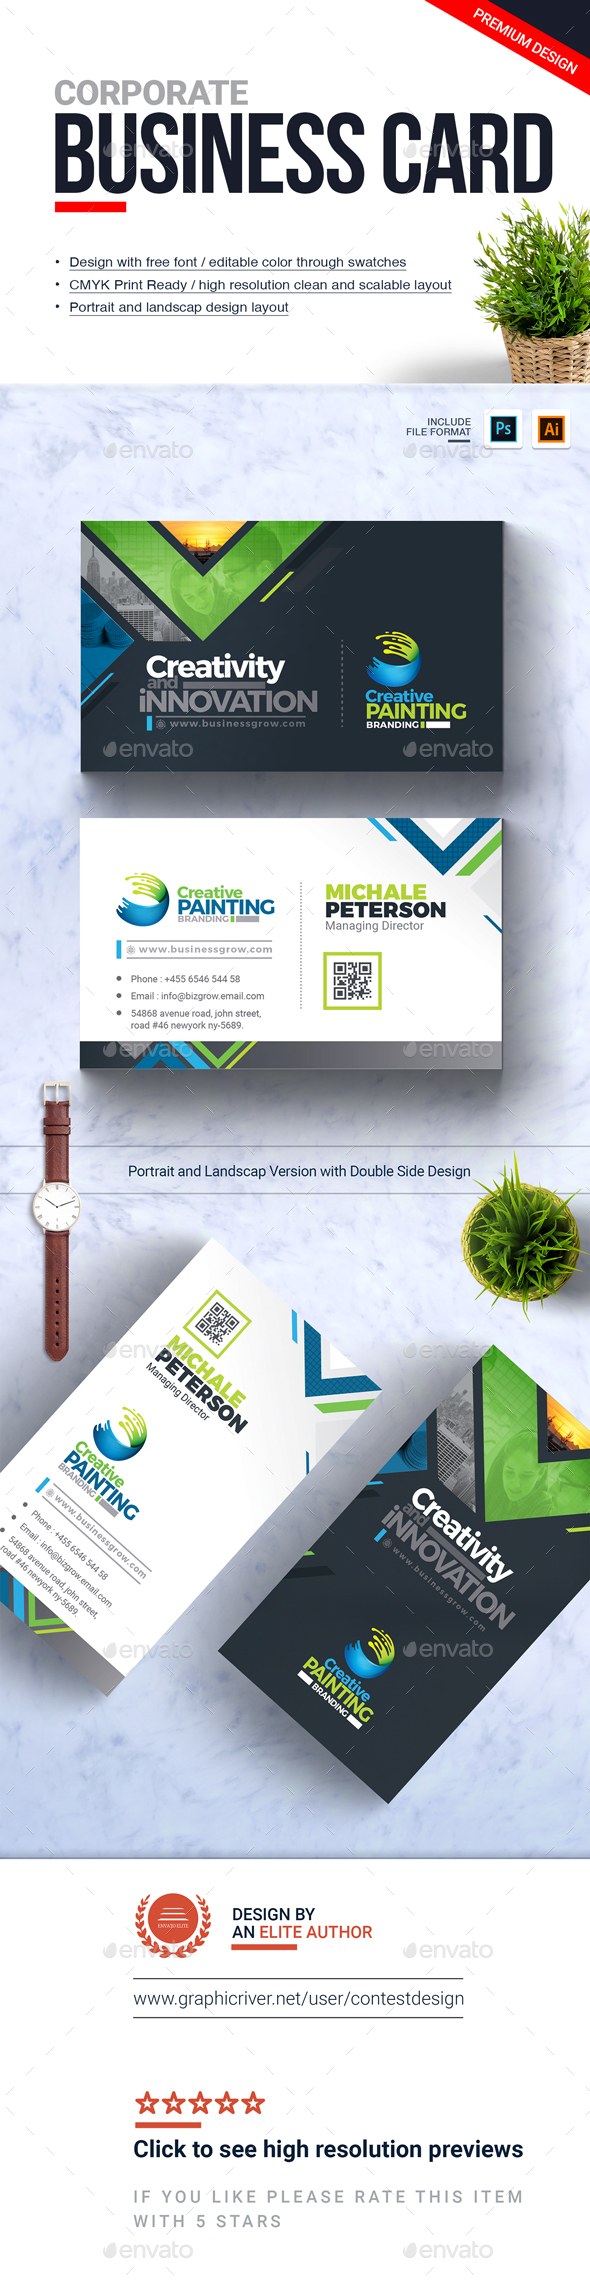 Corporate Business Card Design Template - Corporate Business Cards